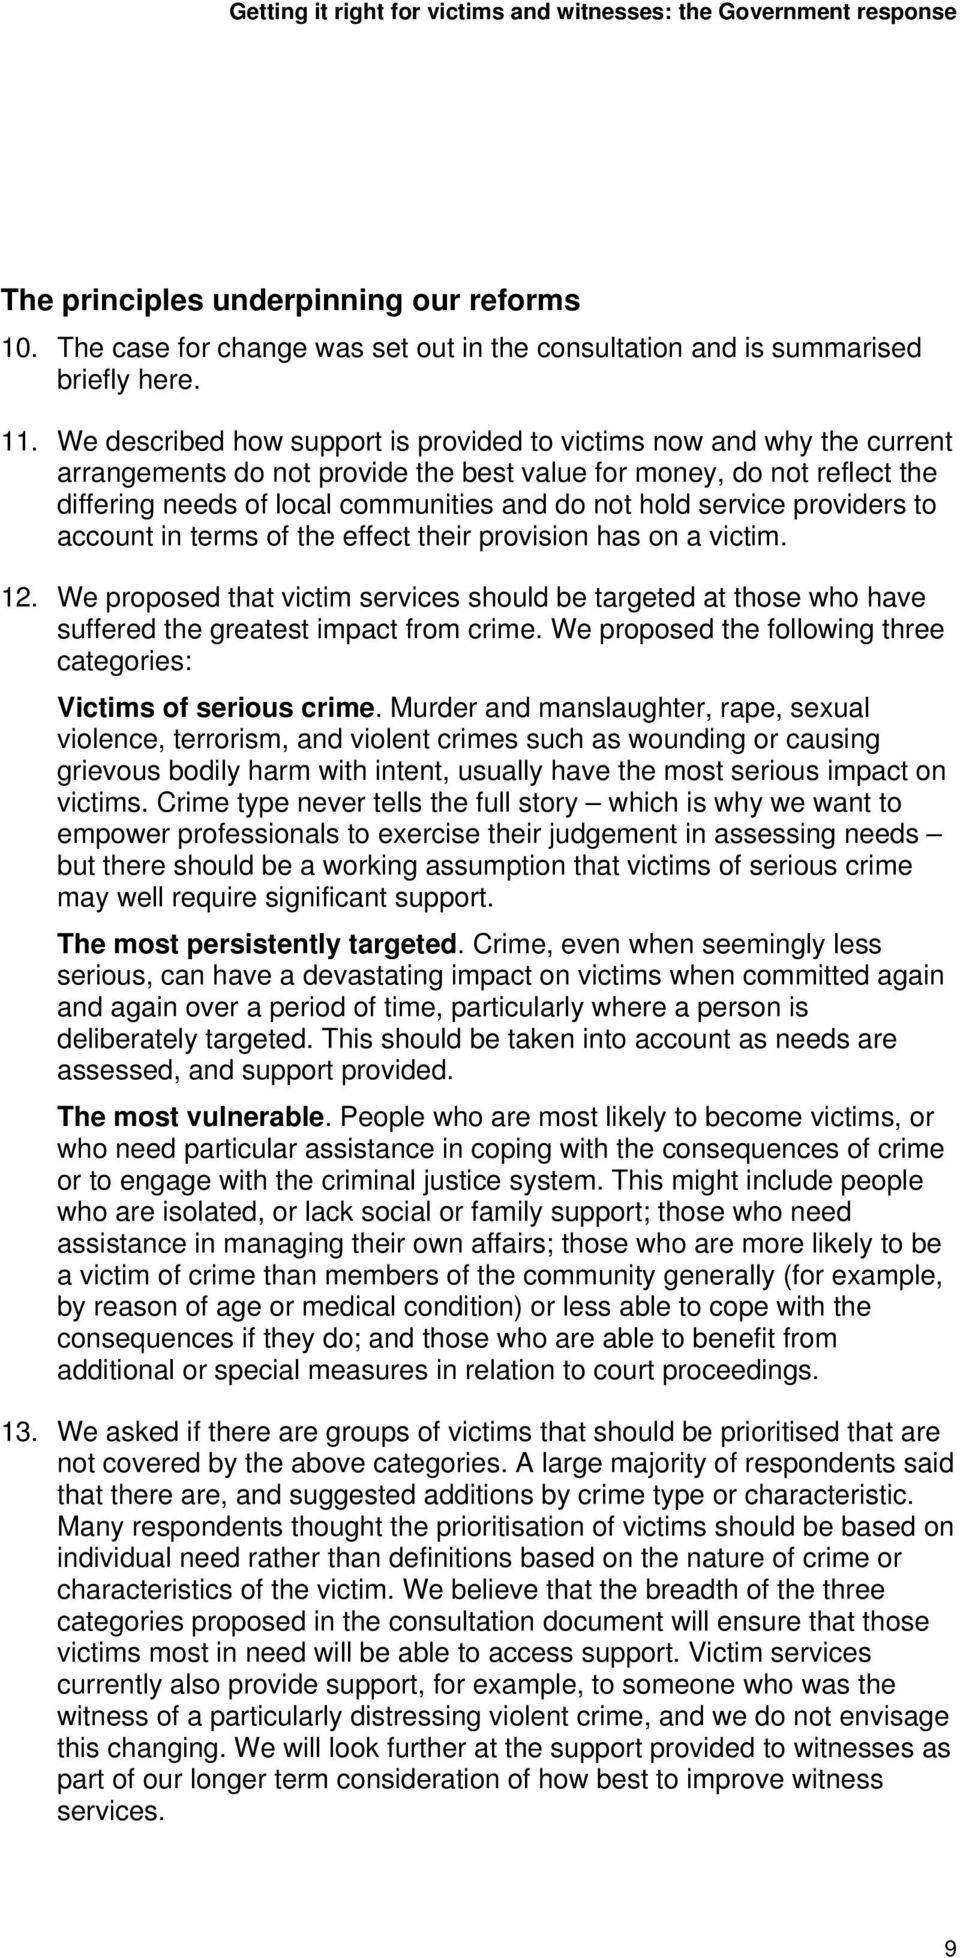 service providers to account in terms of the effect their provision has on a victim. 12. We proposed that victim services should be targeted at those who have suffered the greatest impact from crime.